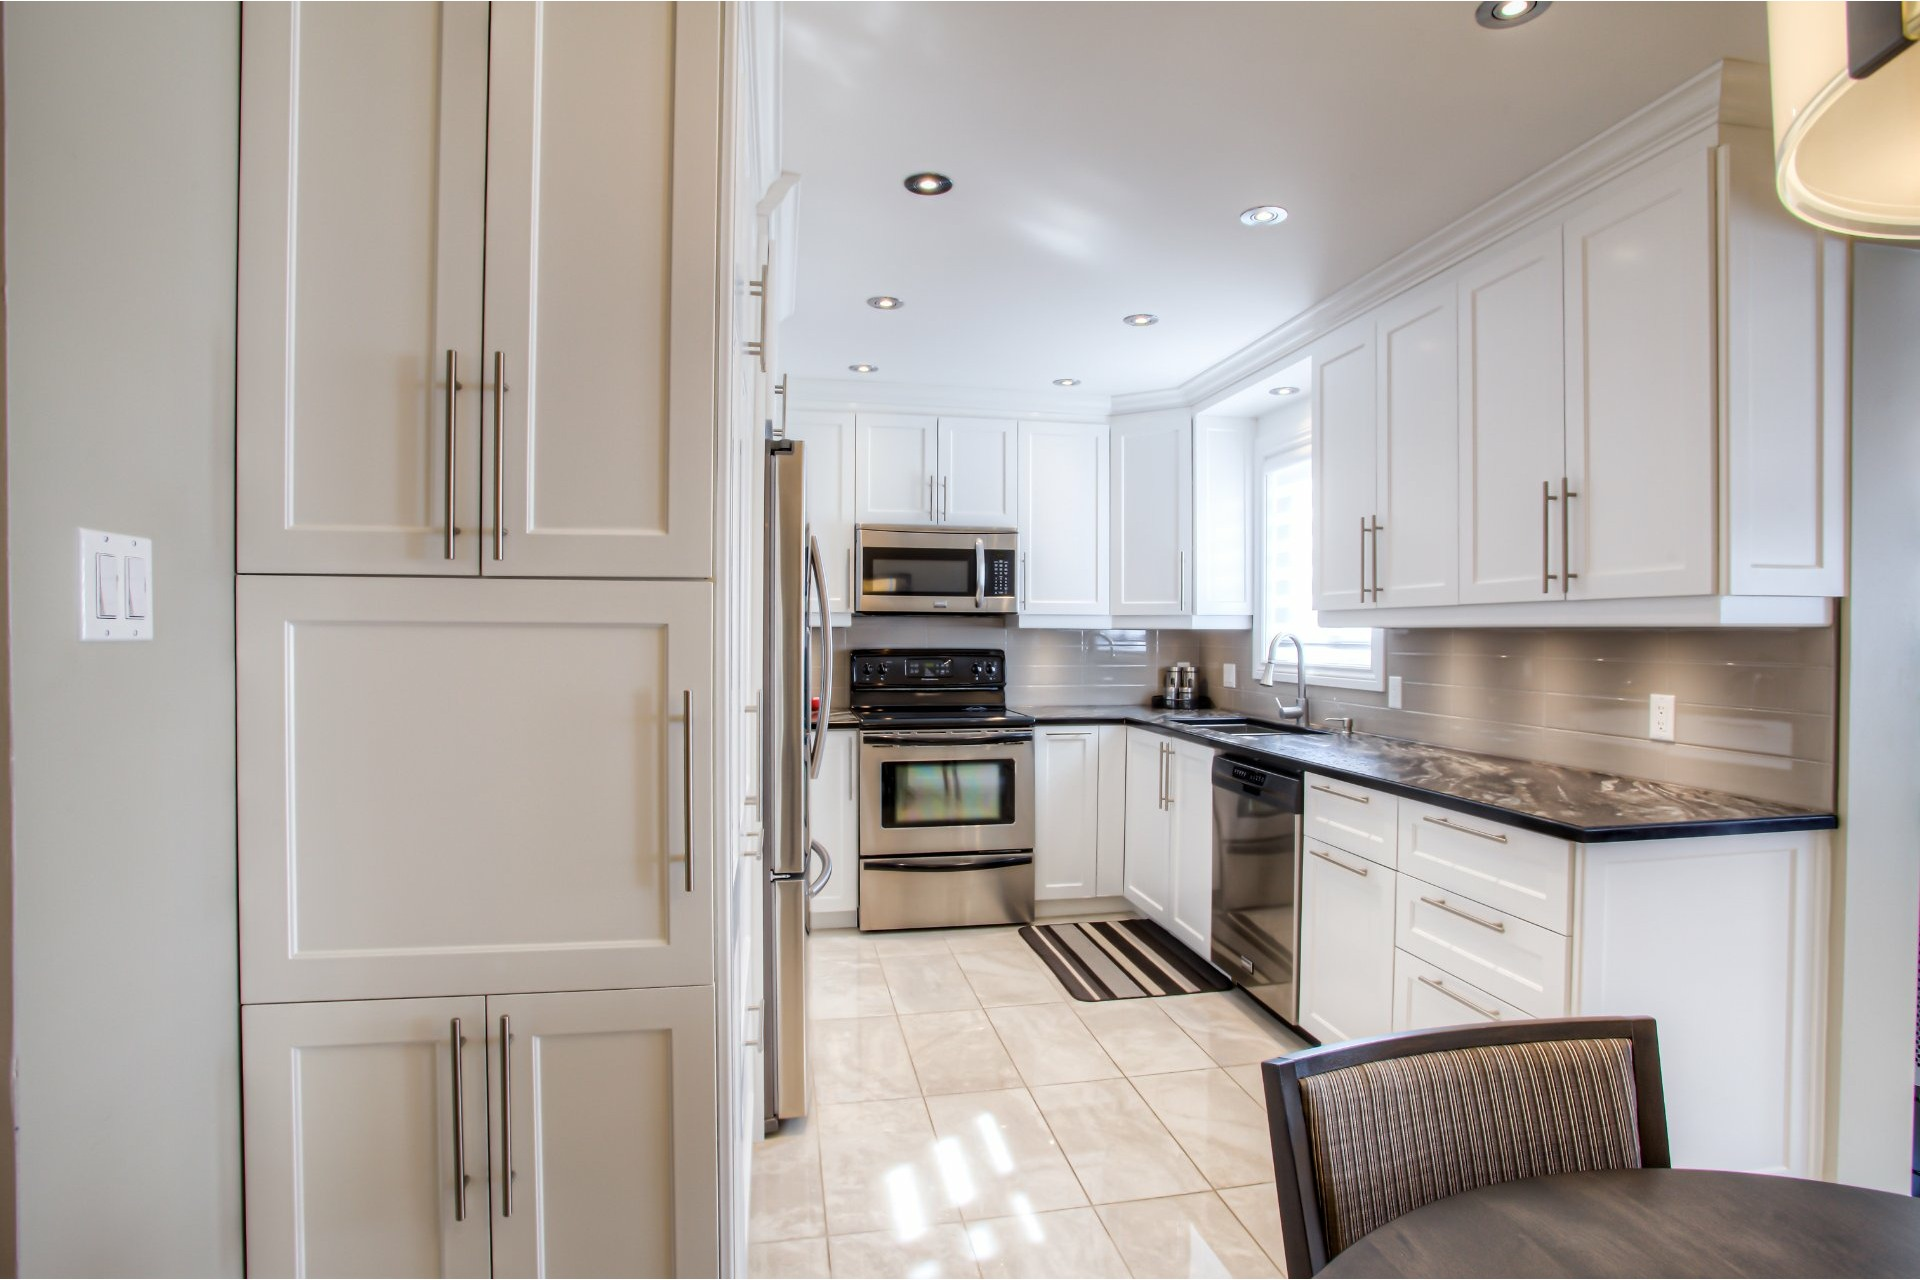 image 4 - House For sale Vaudreuil-Dorion - 11 rooms